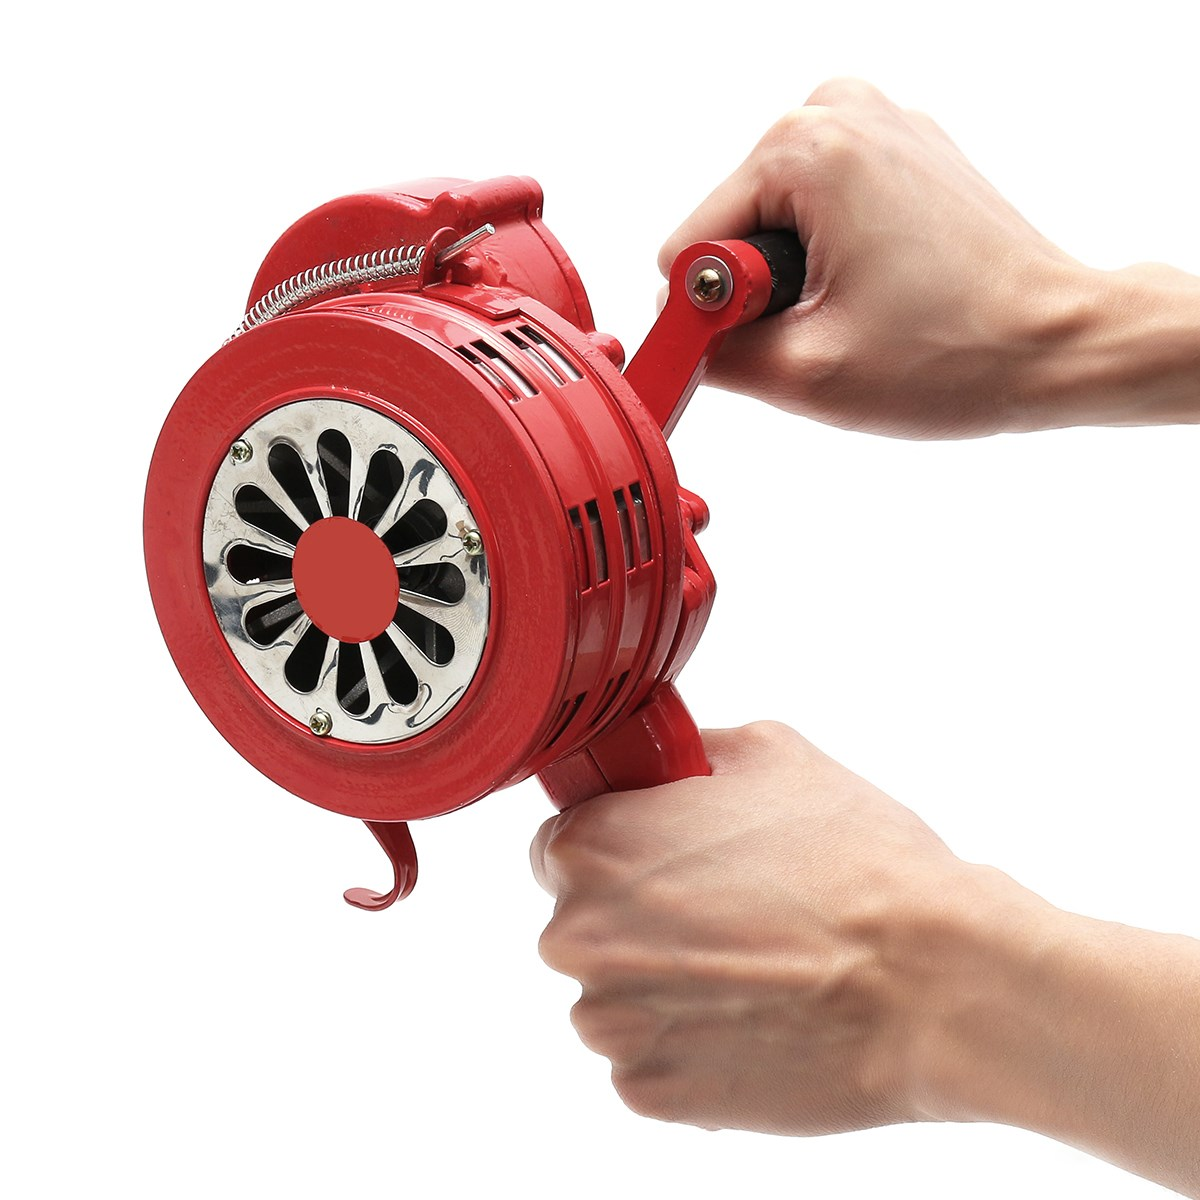 4.5 Inch Red/green All Metal Handheld Manual Operation Safety Alarm Air Raid Siren Portable Flood Warning Signal Warning Tool